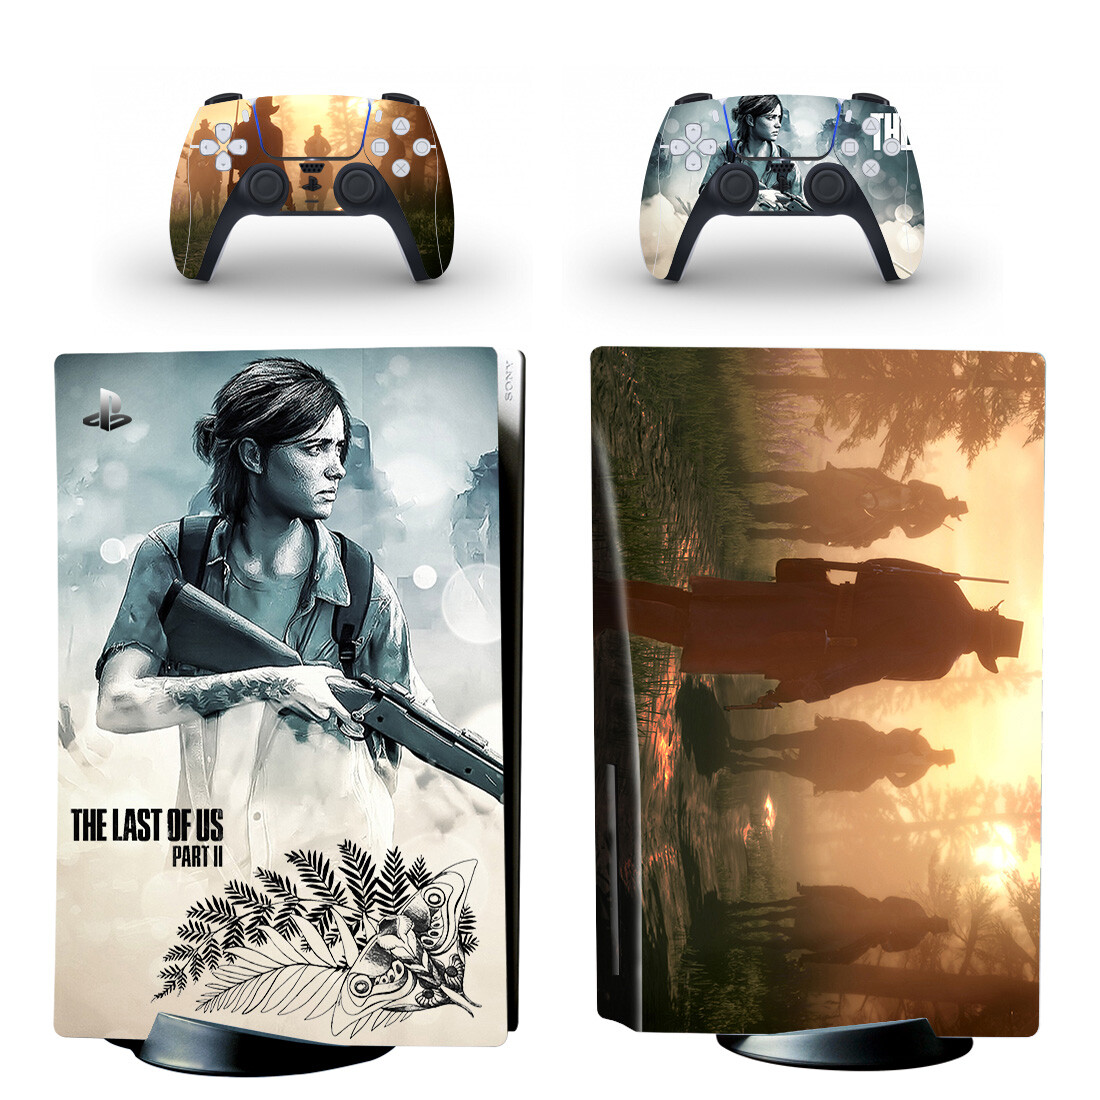 The Last Of Us Skin Sticker For PS5 Skin And Controllers